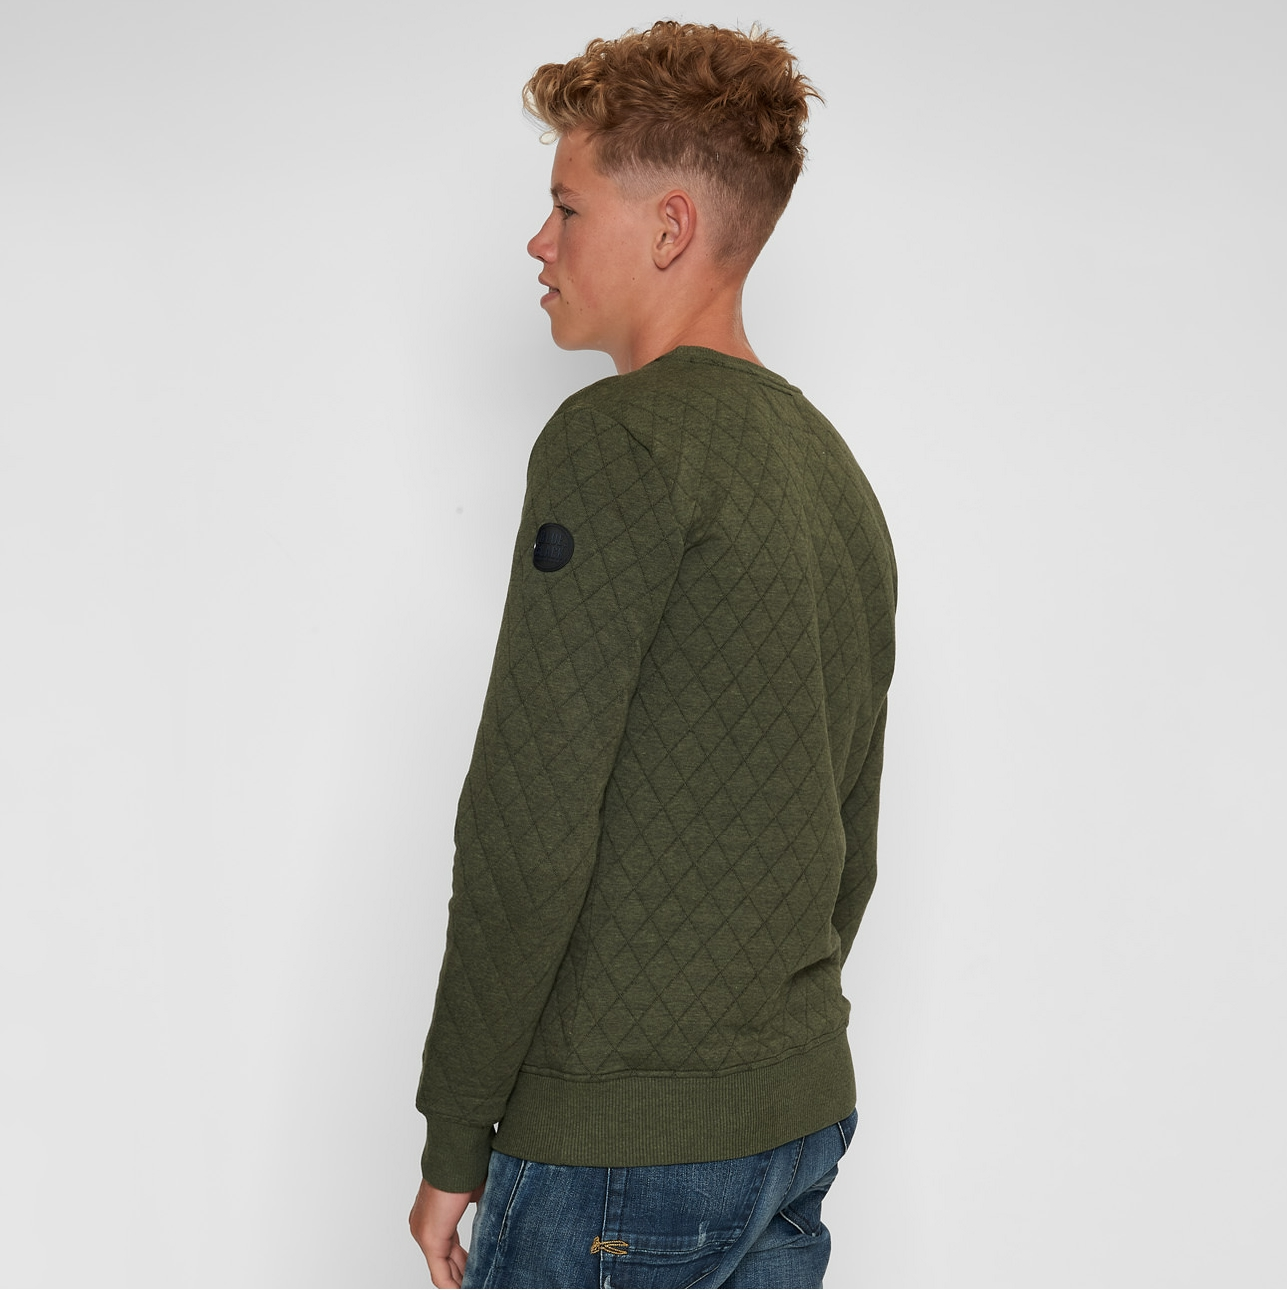 BlueBlack Sweater MATHIJS 2.0 Groen Melange back